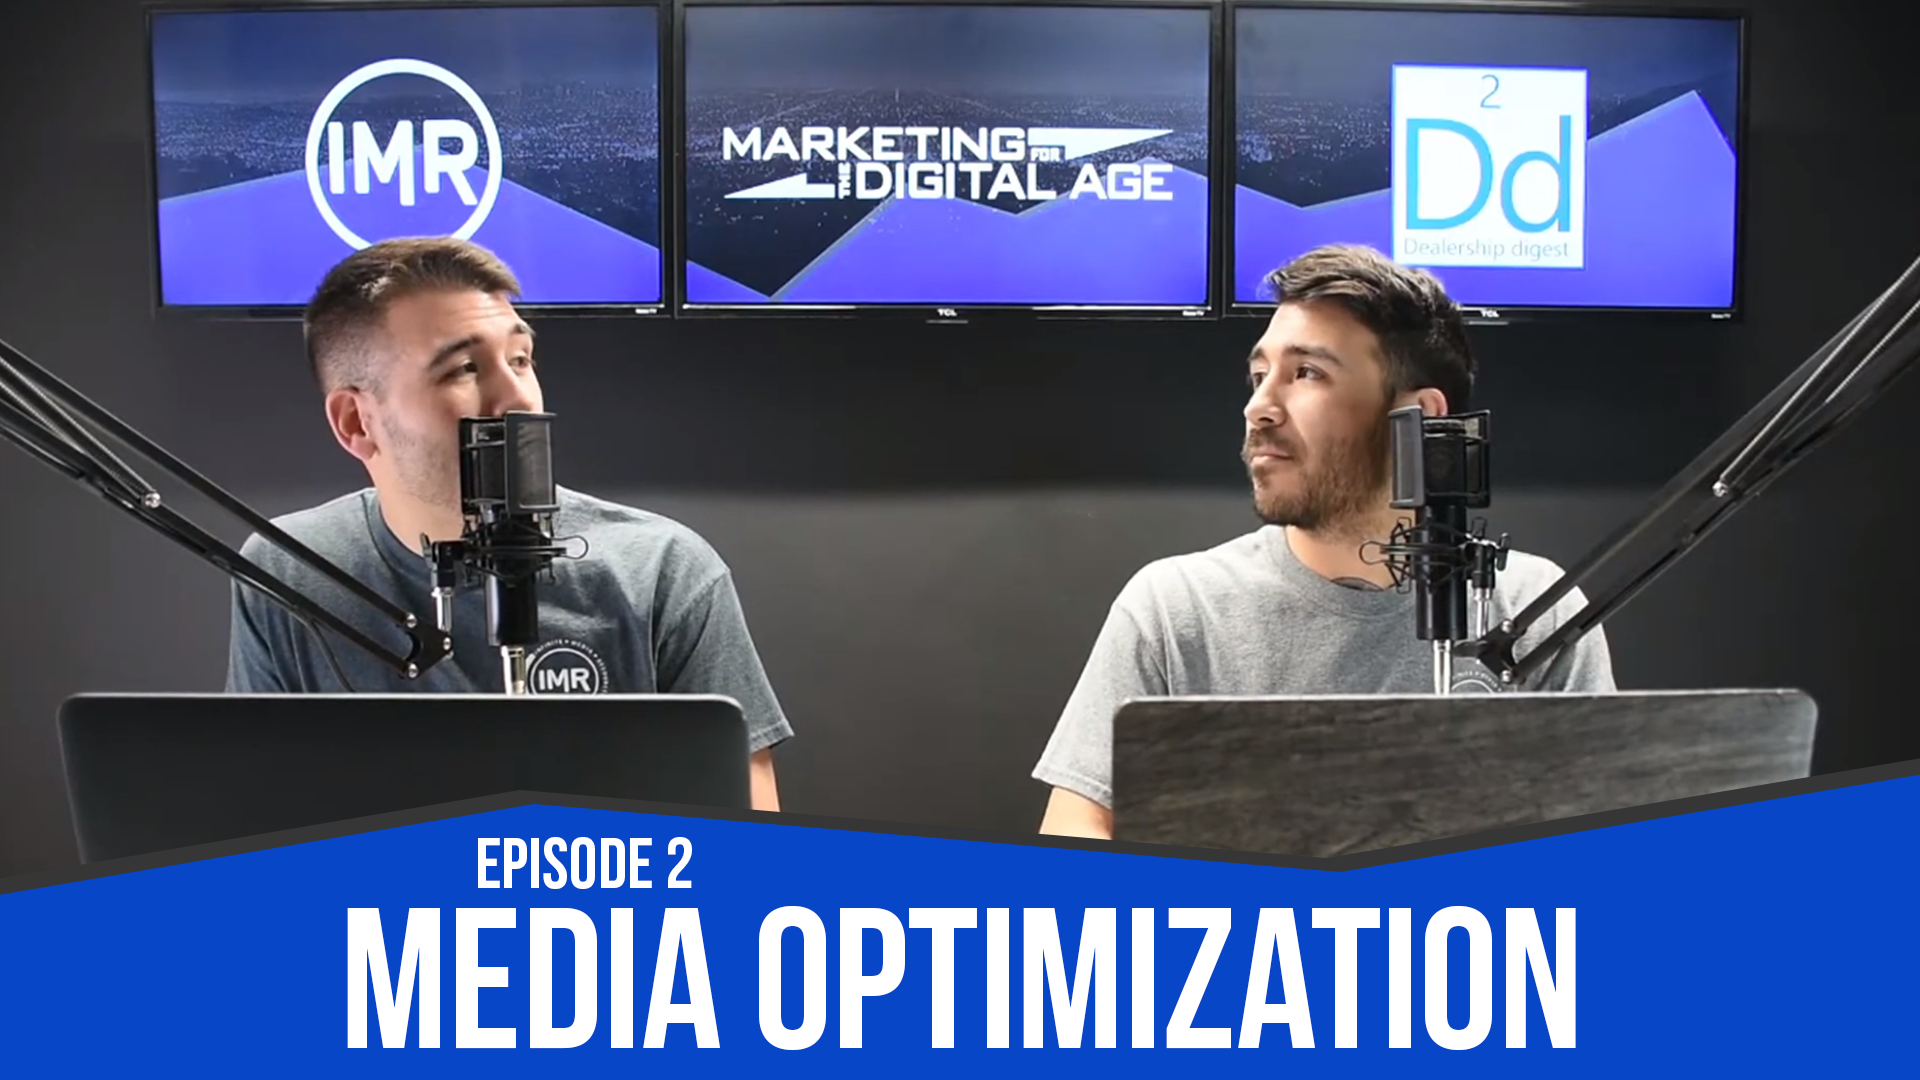 dealership digest episode 2 media optimization